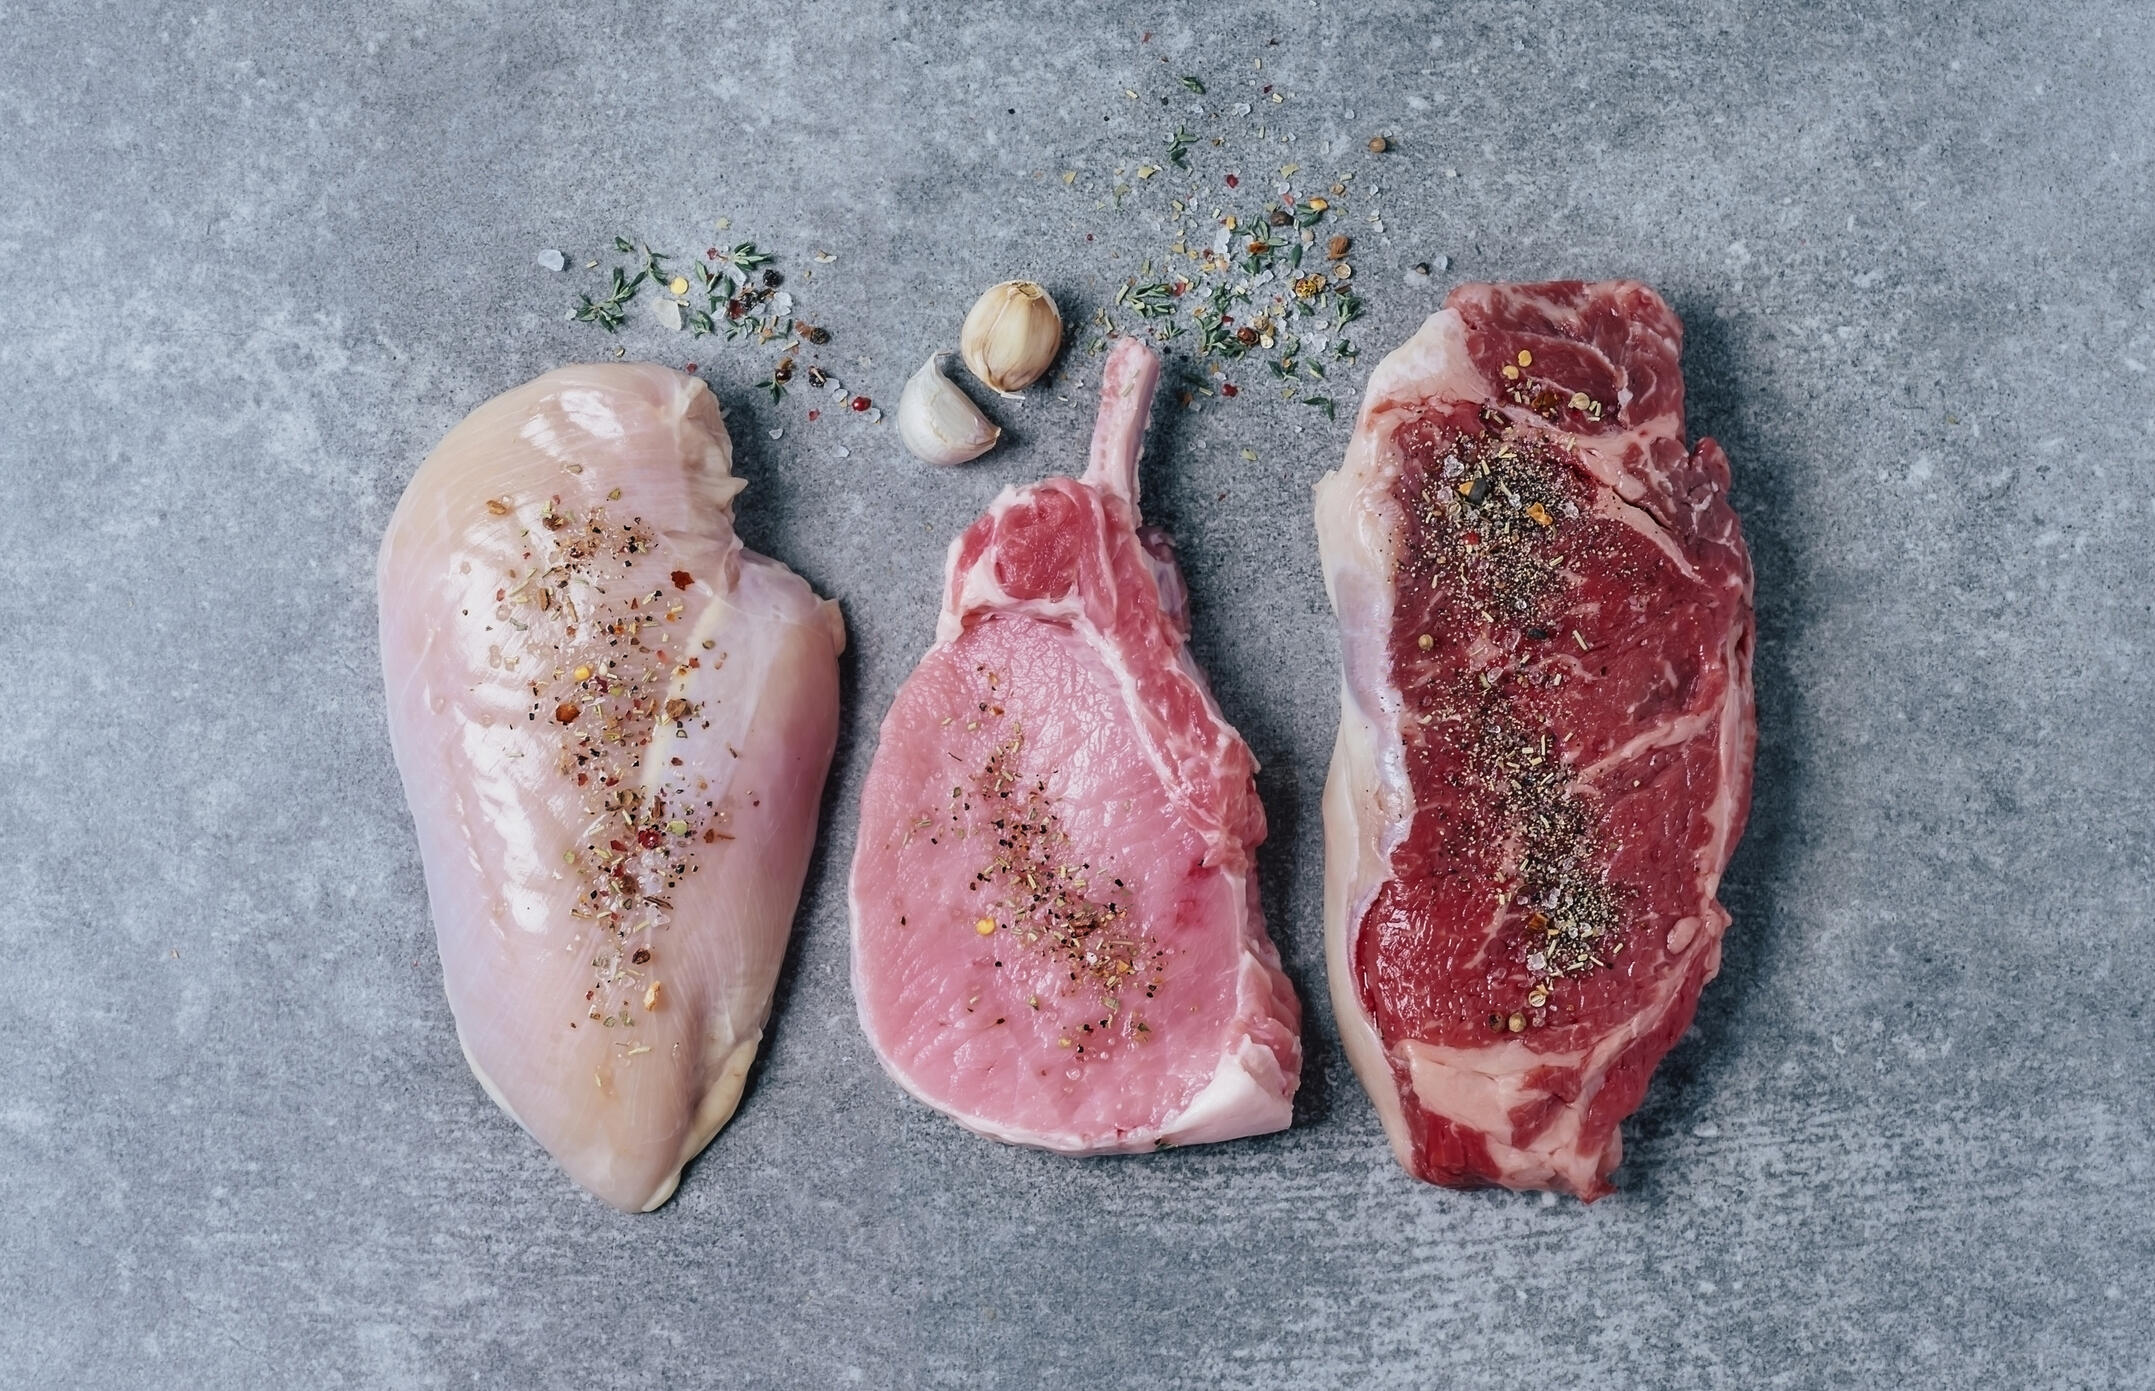 cuts of chicken, pork, and beef on a gray countertop